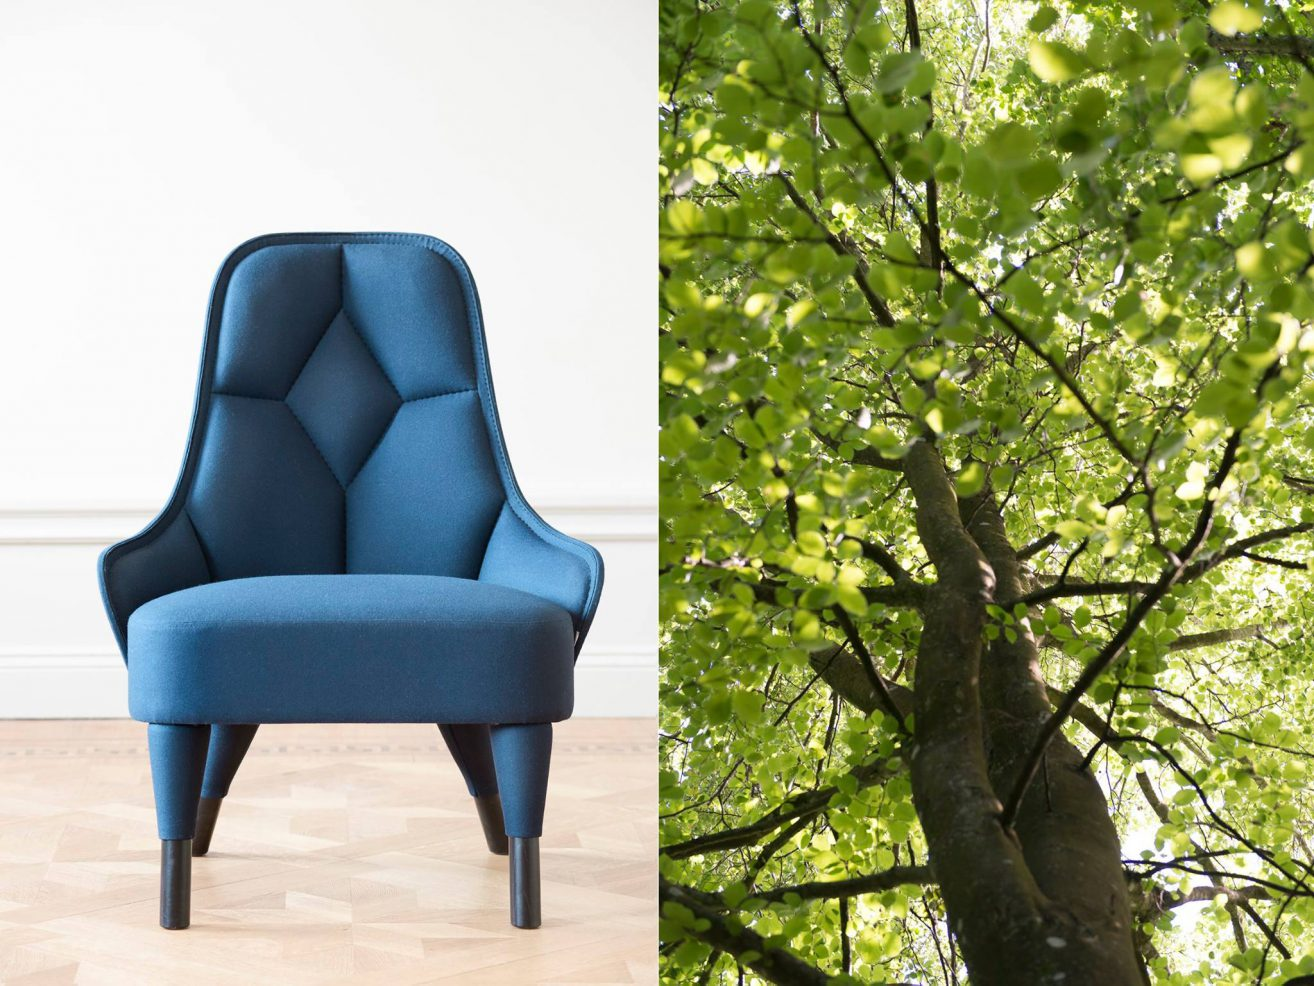 Armchair Emma has been added to the Green List - designed by Färg & Blanche